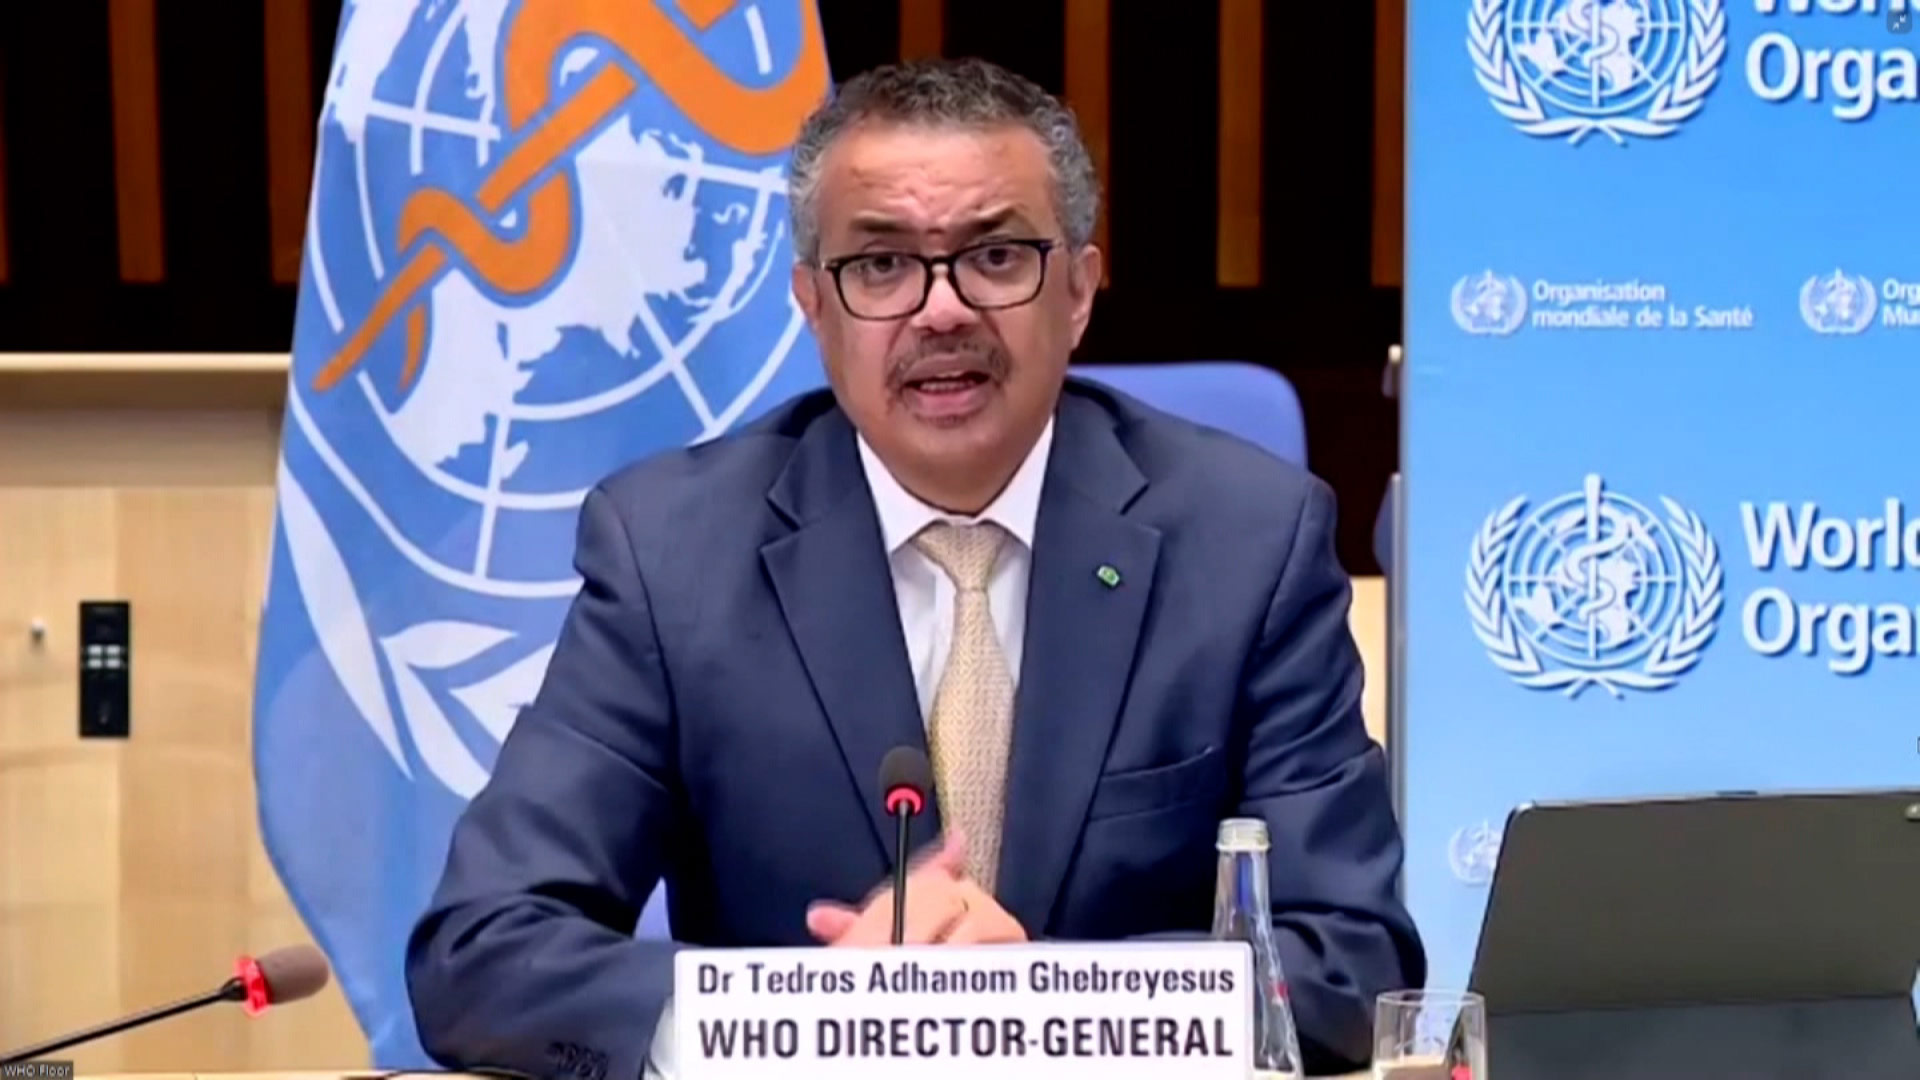 World Health Organization Director General Tedros Adhanom Ghebreyesus speaks during a press conference on Monday, March 29.